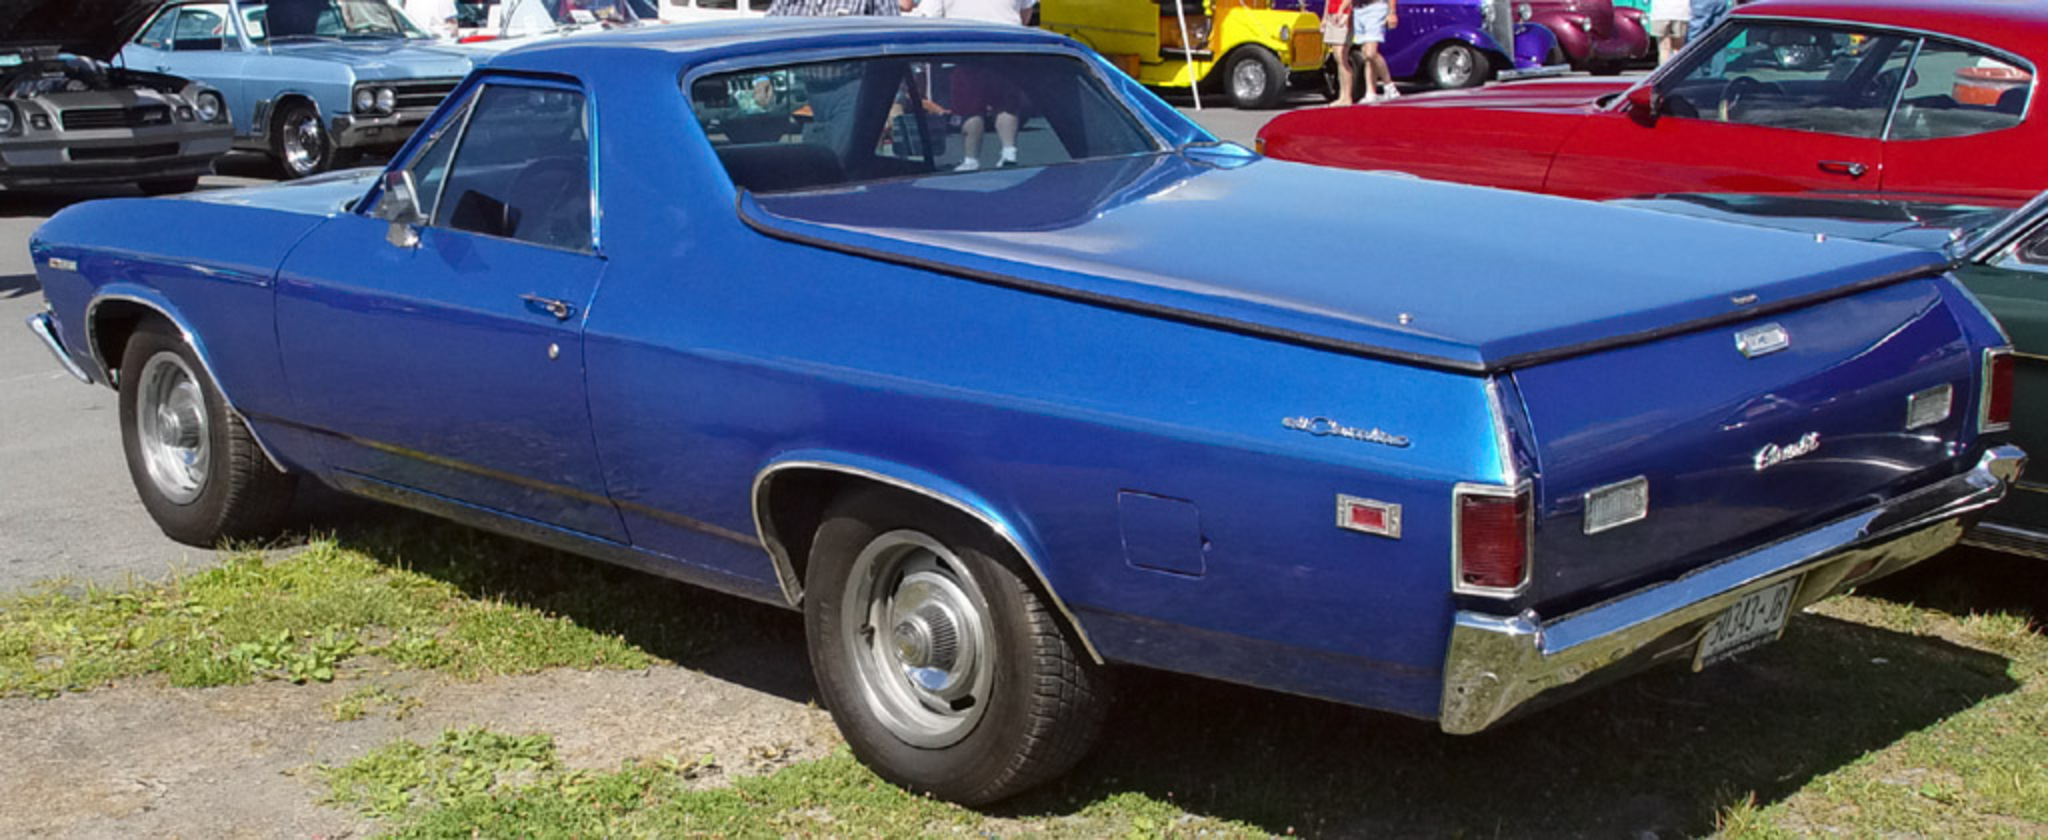 1969 Chevrolet El Camino - Blue - Rear Angle. Image Copyright Serious Wheels